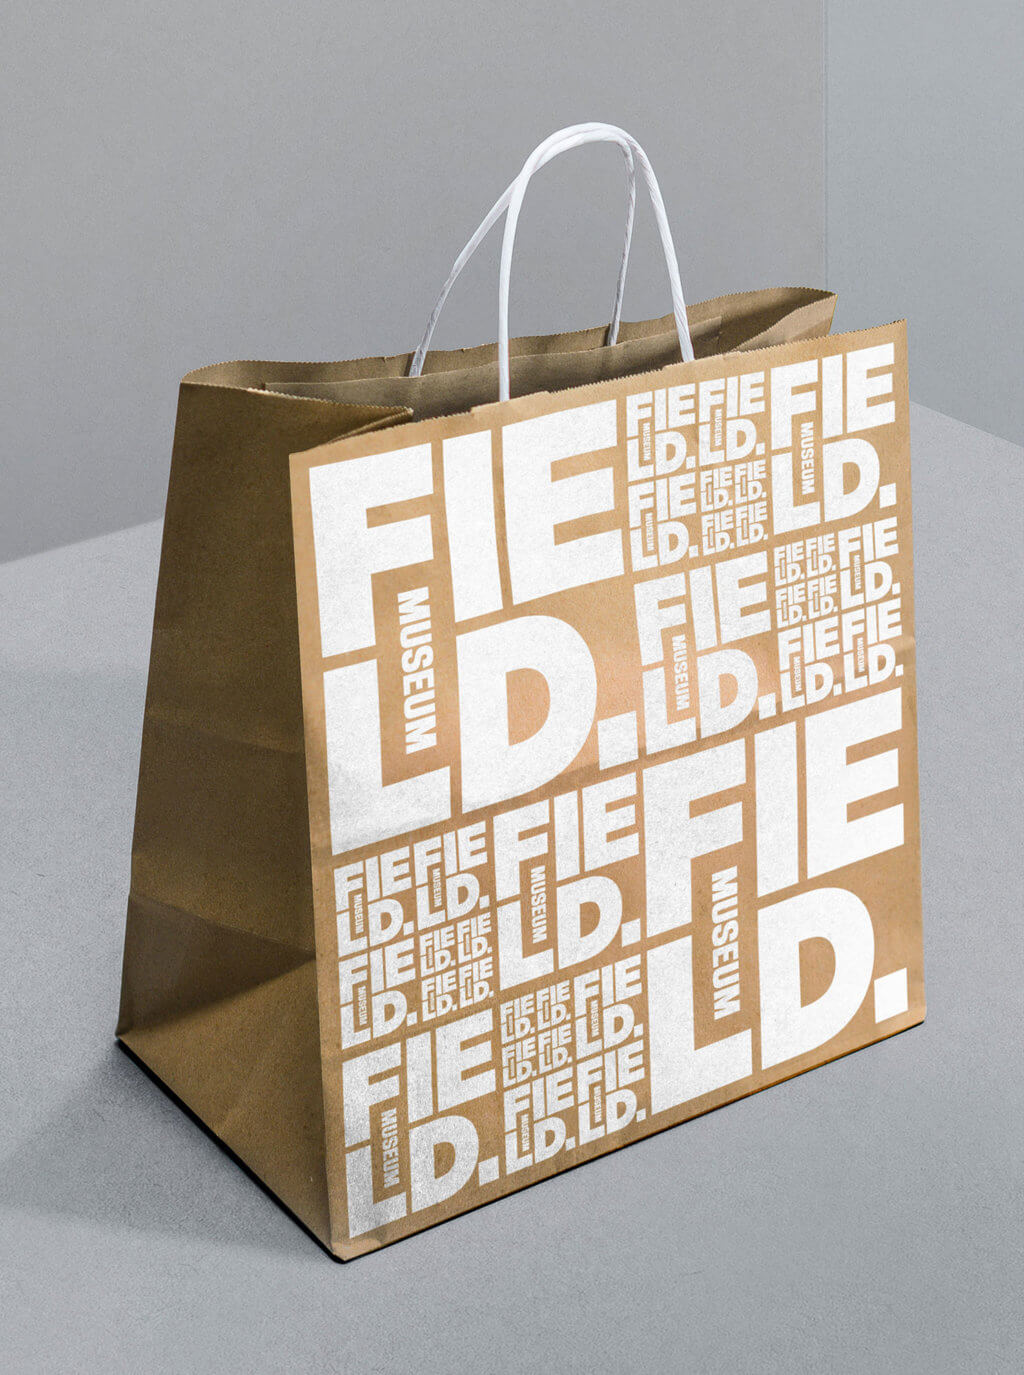 The Field Museum's logo is duplicated multiple times in white to cover the front side of a brown paper shopping bag.